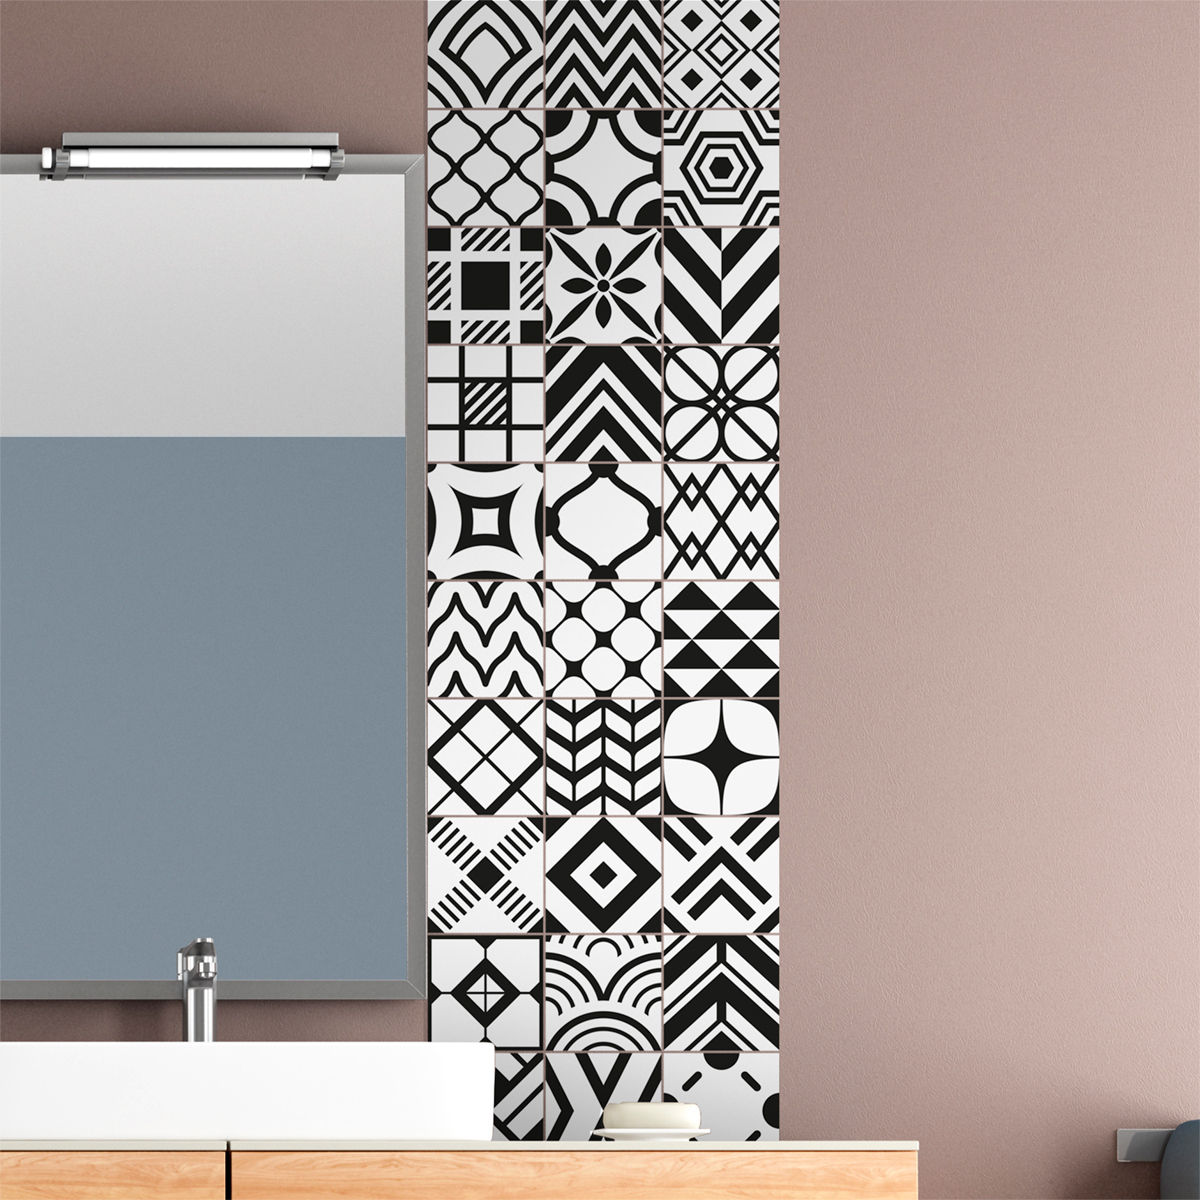 30 stickers carrelages scandinave glasgow salle de bain. Black Bedroom Furniture Sets. Home Design Ideas